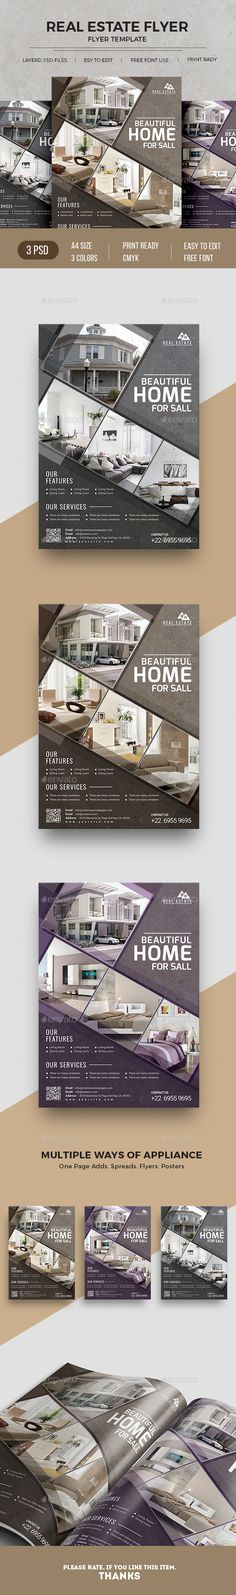 #RealEstateFlyer - Commerce Flyers A4 Paper Size With Bleed 3 Different Color Versions 300 DPI, CMYK, Print ready file Very Easy to Customize & replace the picture images & logo via Smart Object